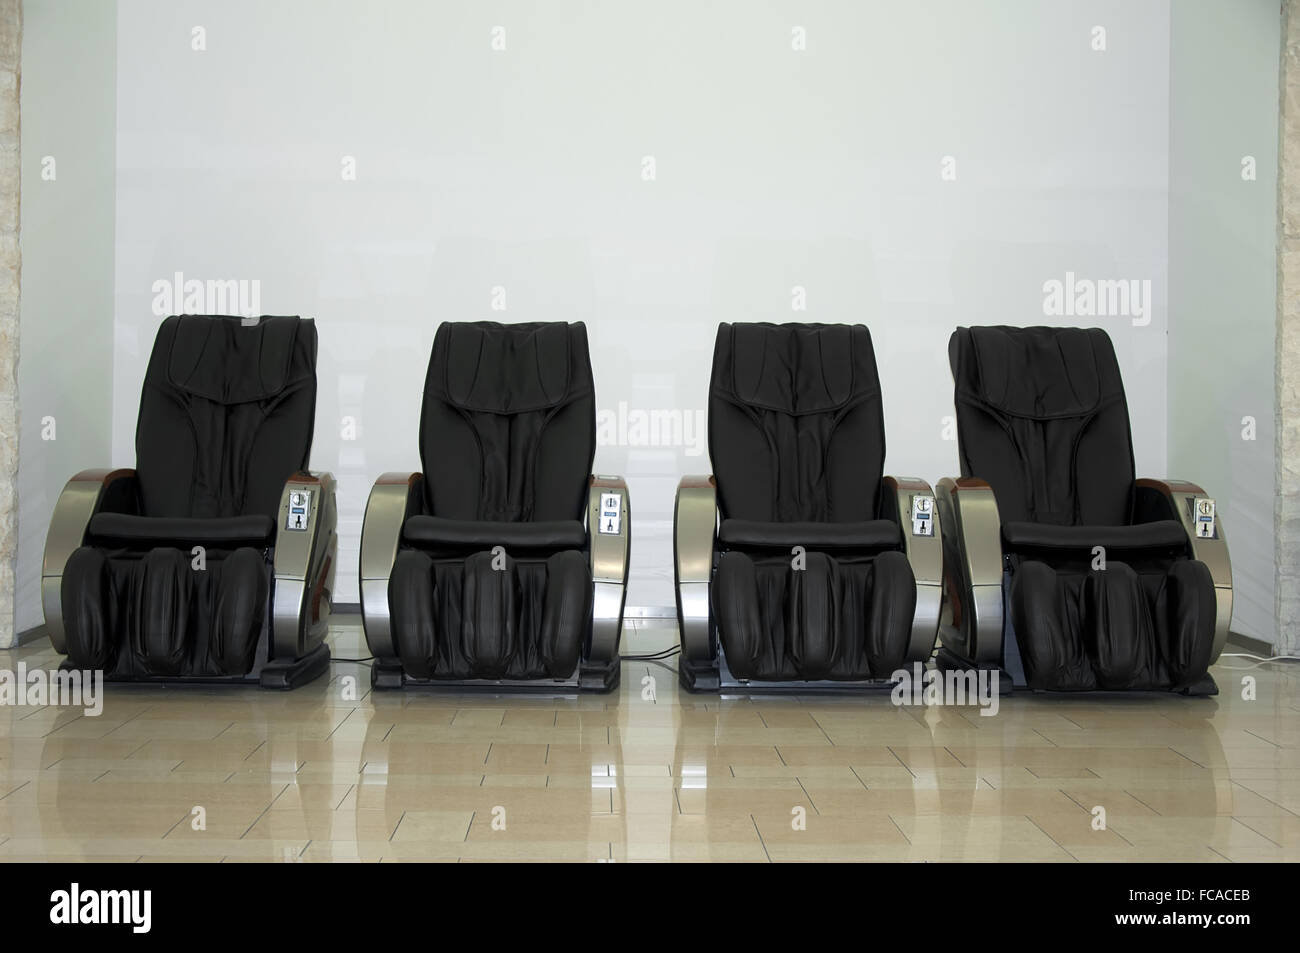 Japanische Massagesessel Massage Chairs Stockfotos Massage Chairs Bilder Alamy